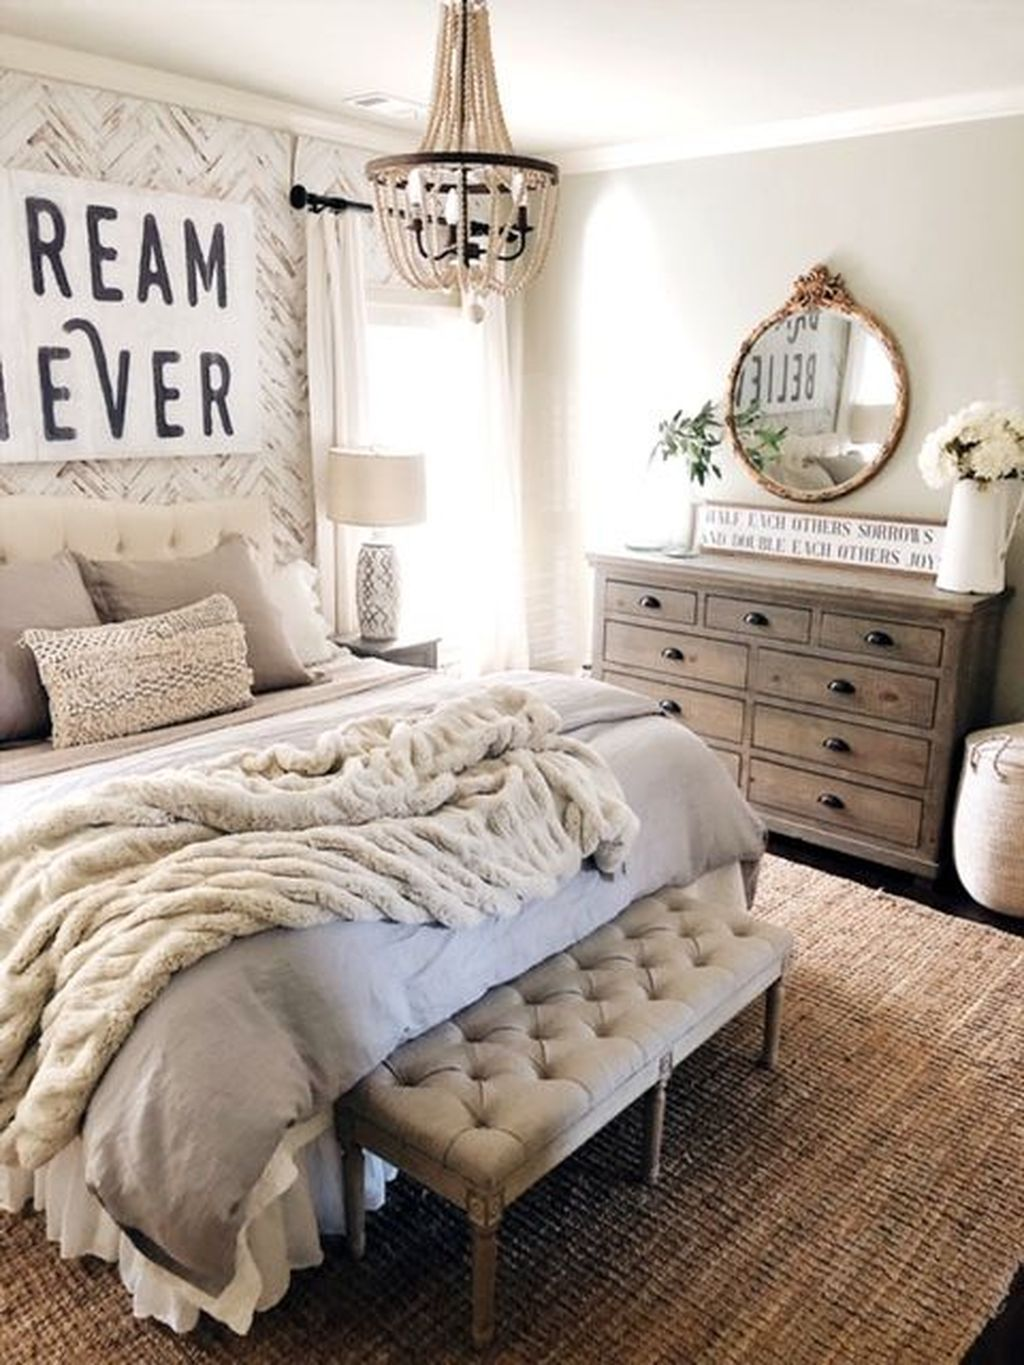 Lovely Farmhouse Style Master Bedroom Ideas That Will Impress You Romantic Bedroom Decor Farmhouse Bedroom Decor Farm House Living Room